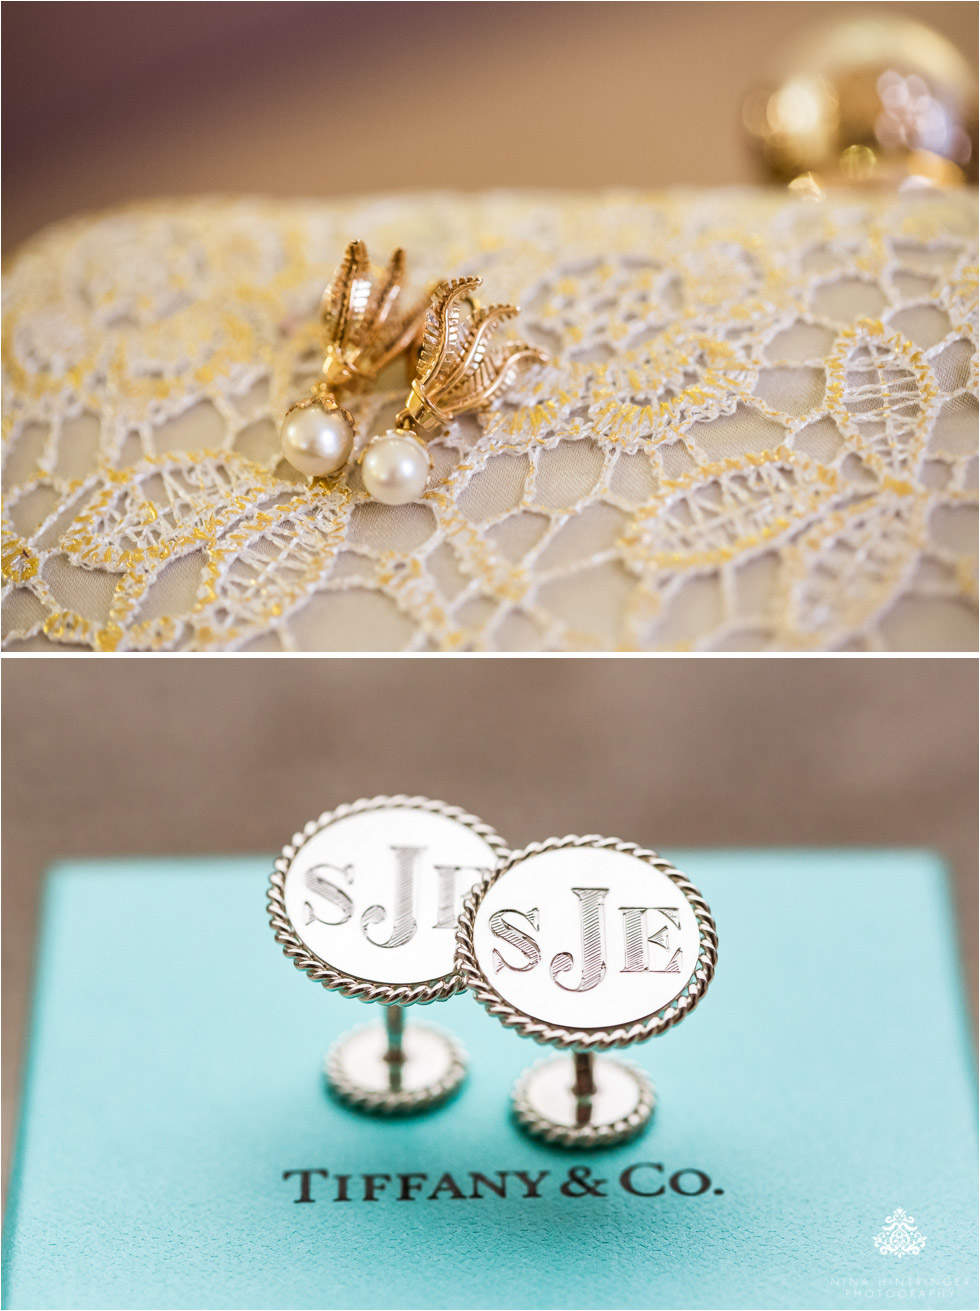 Detail shots of earrings and cufflinks - Blog of Nina Hintringer Photography - Wedding Photography, Wedding Reportage and Destination Weddings